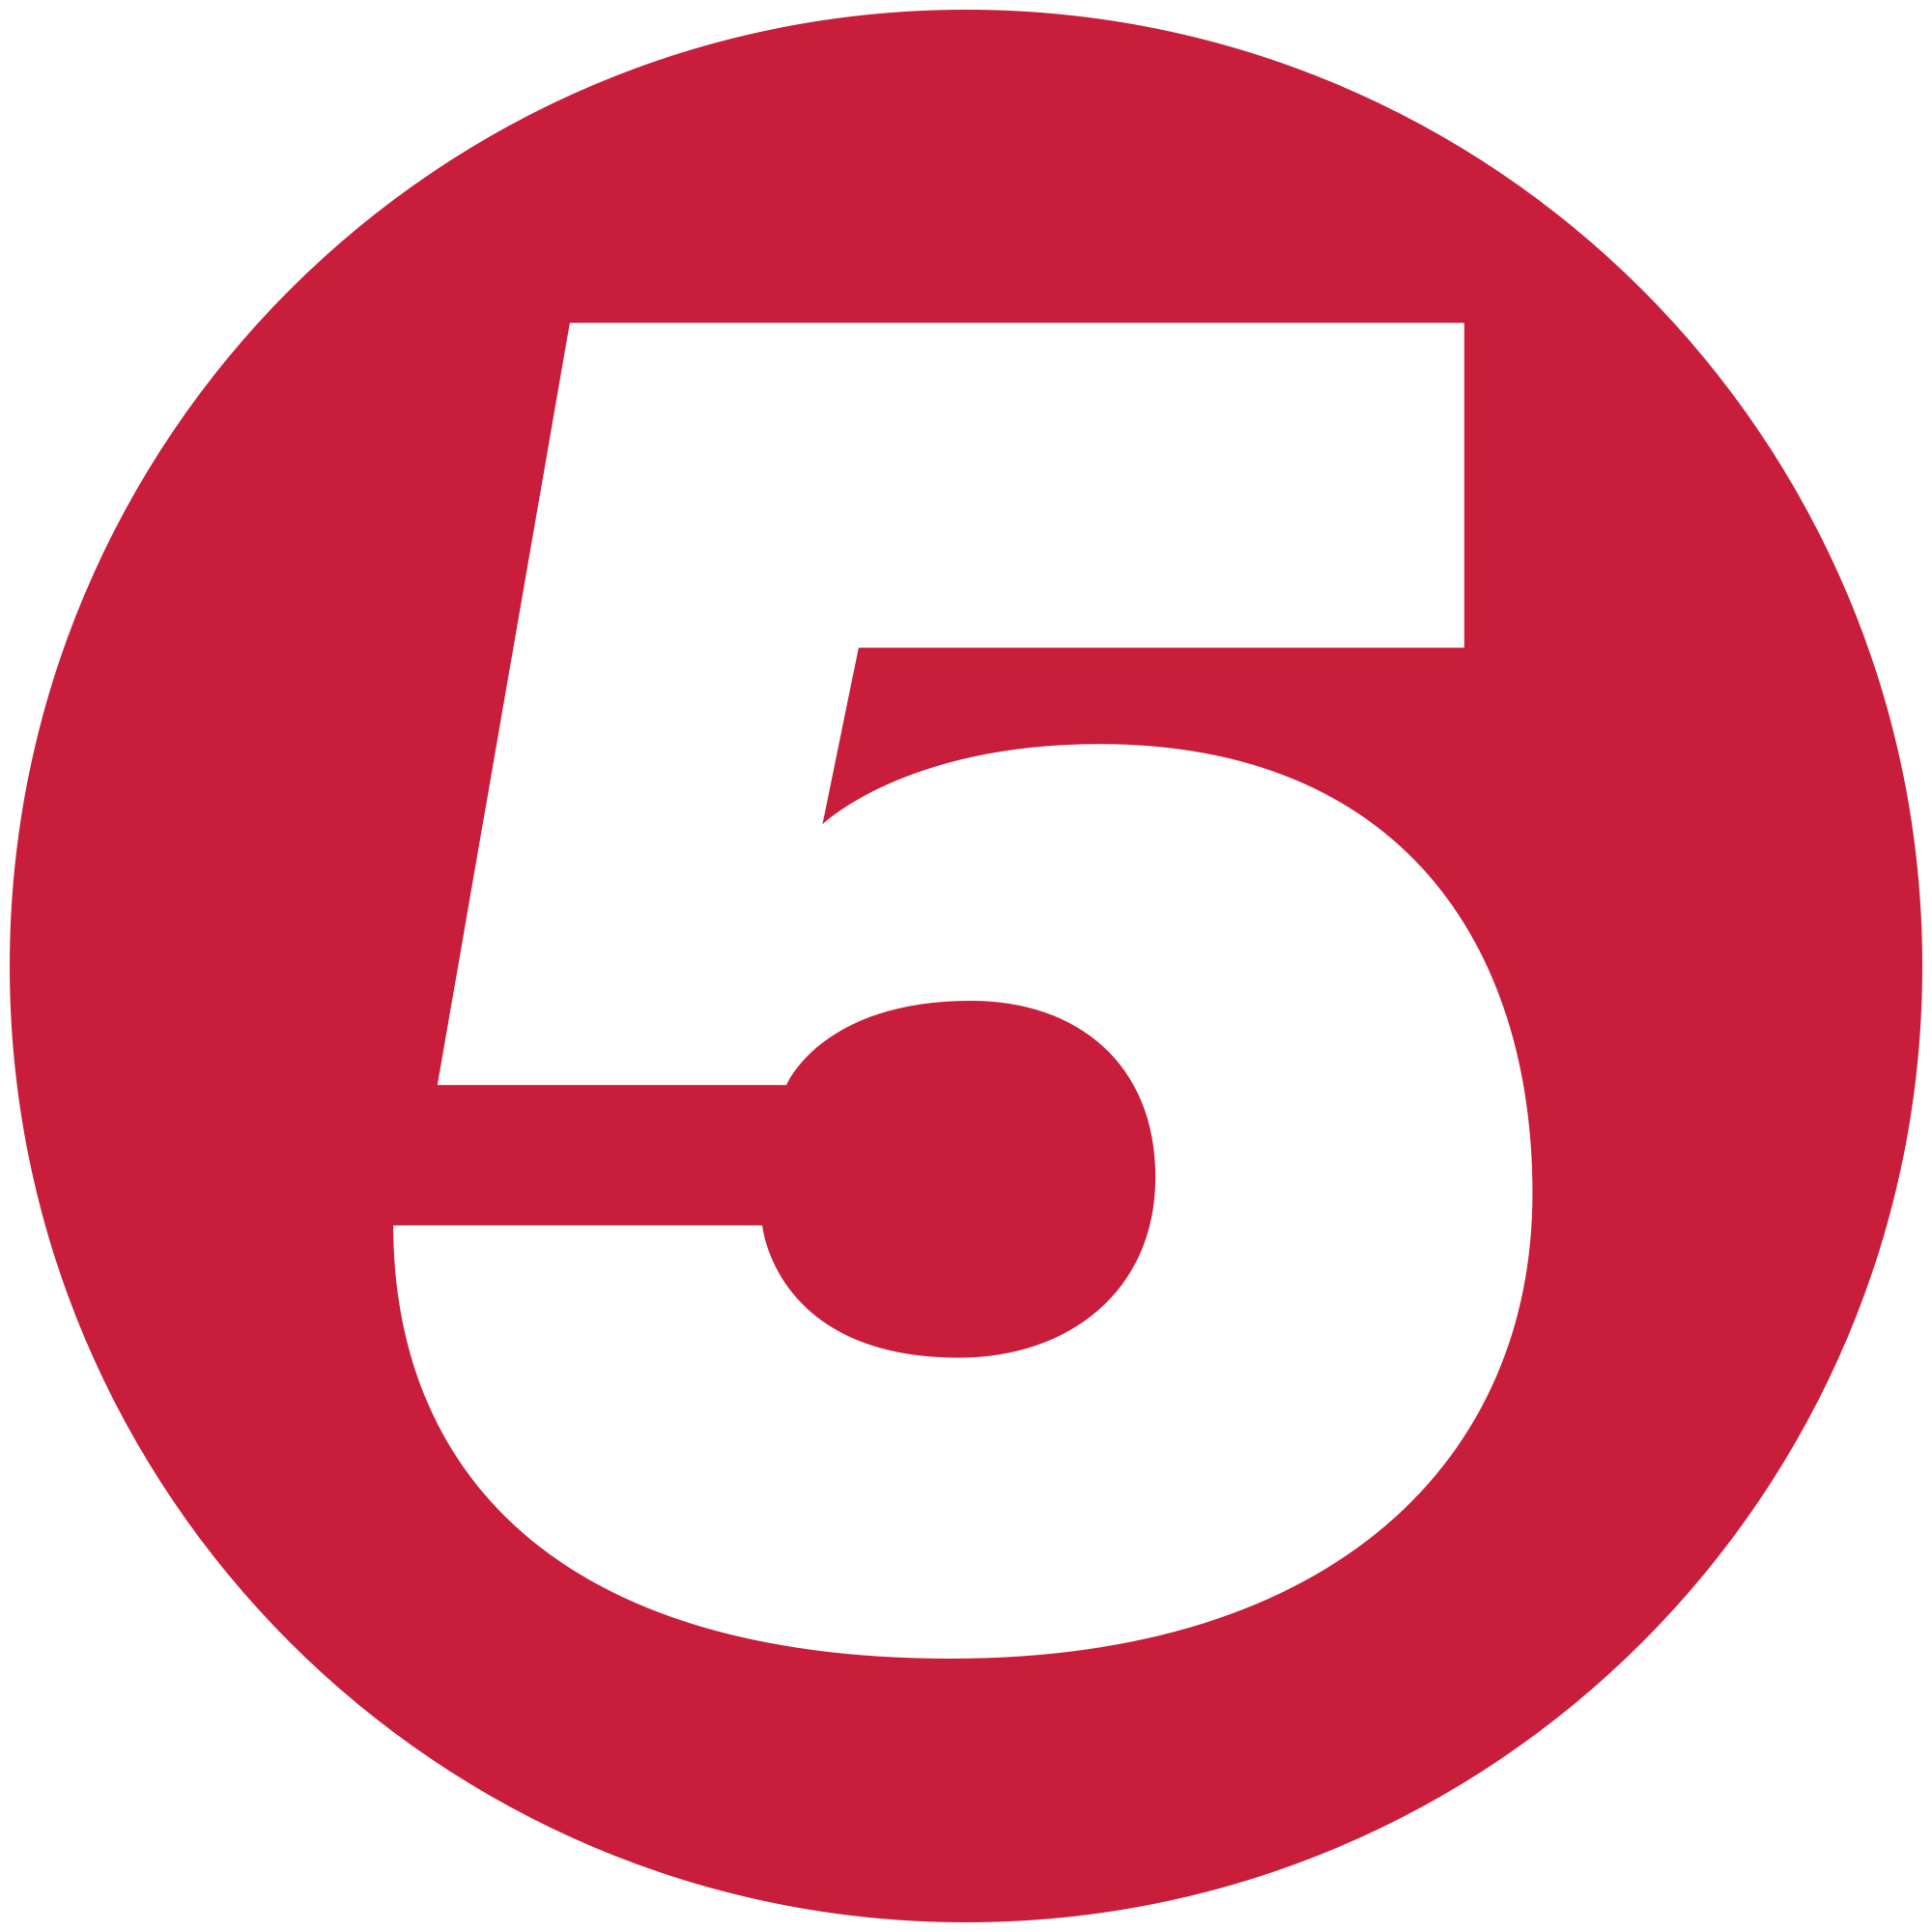 Channel 5 logo png. File svg wikimedia commons